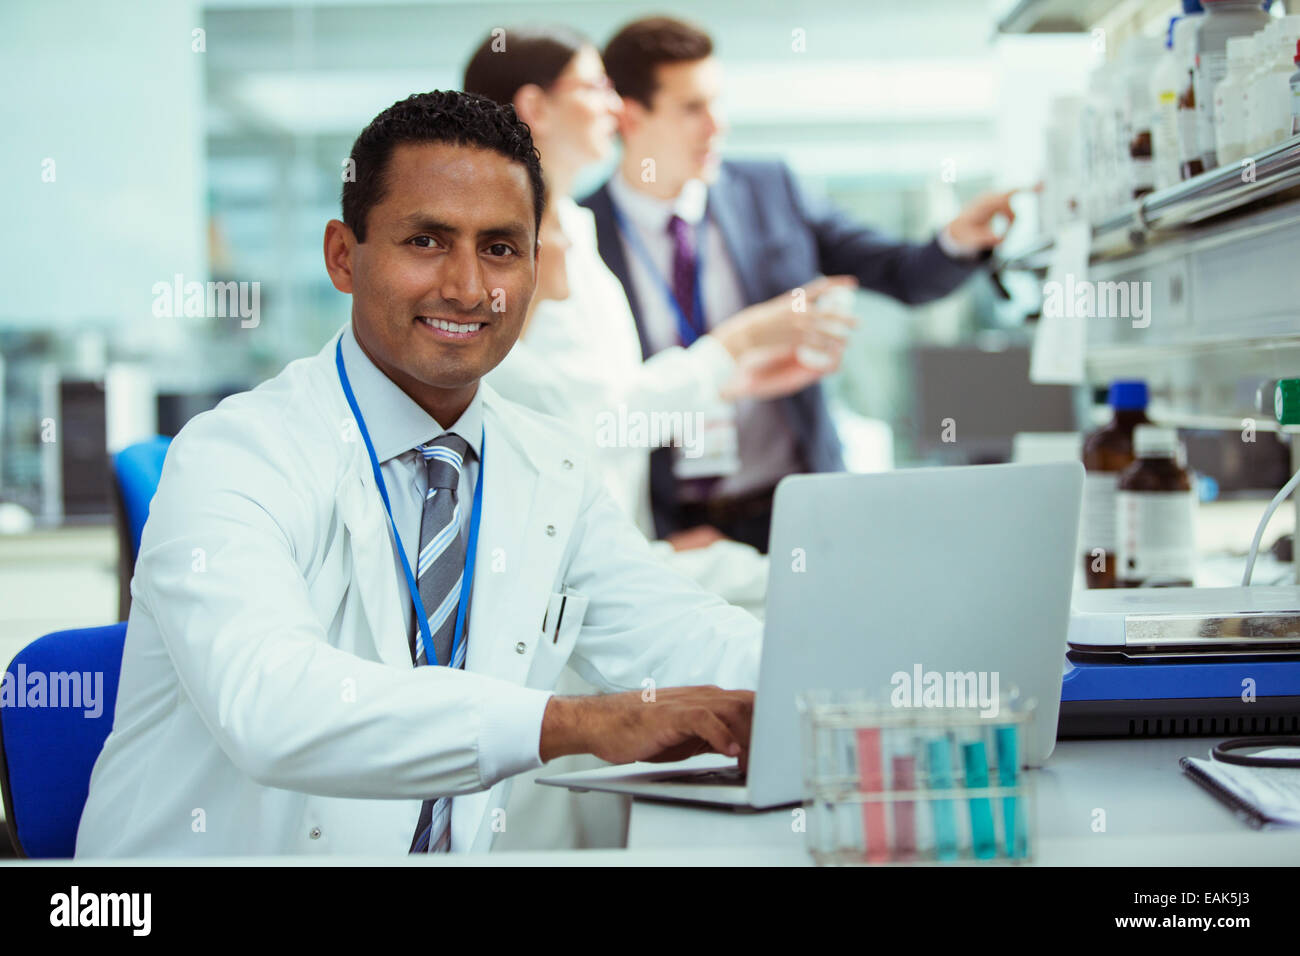 Scientist working on laptop in laboratory - Stock Image